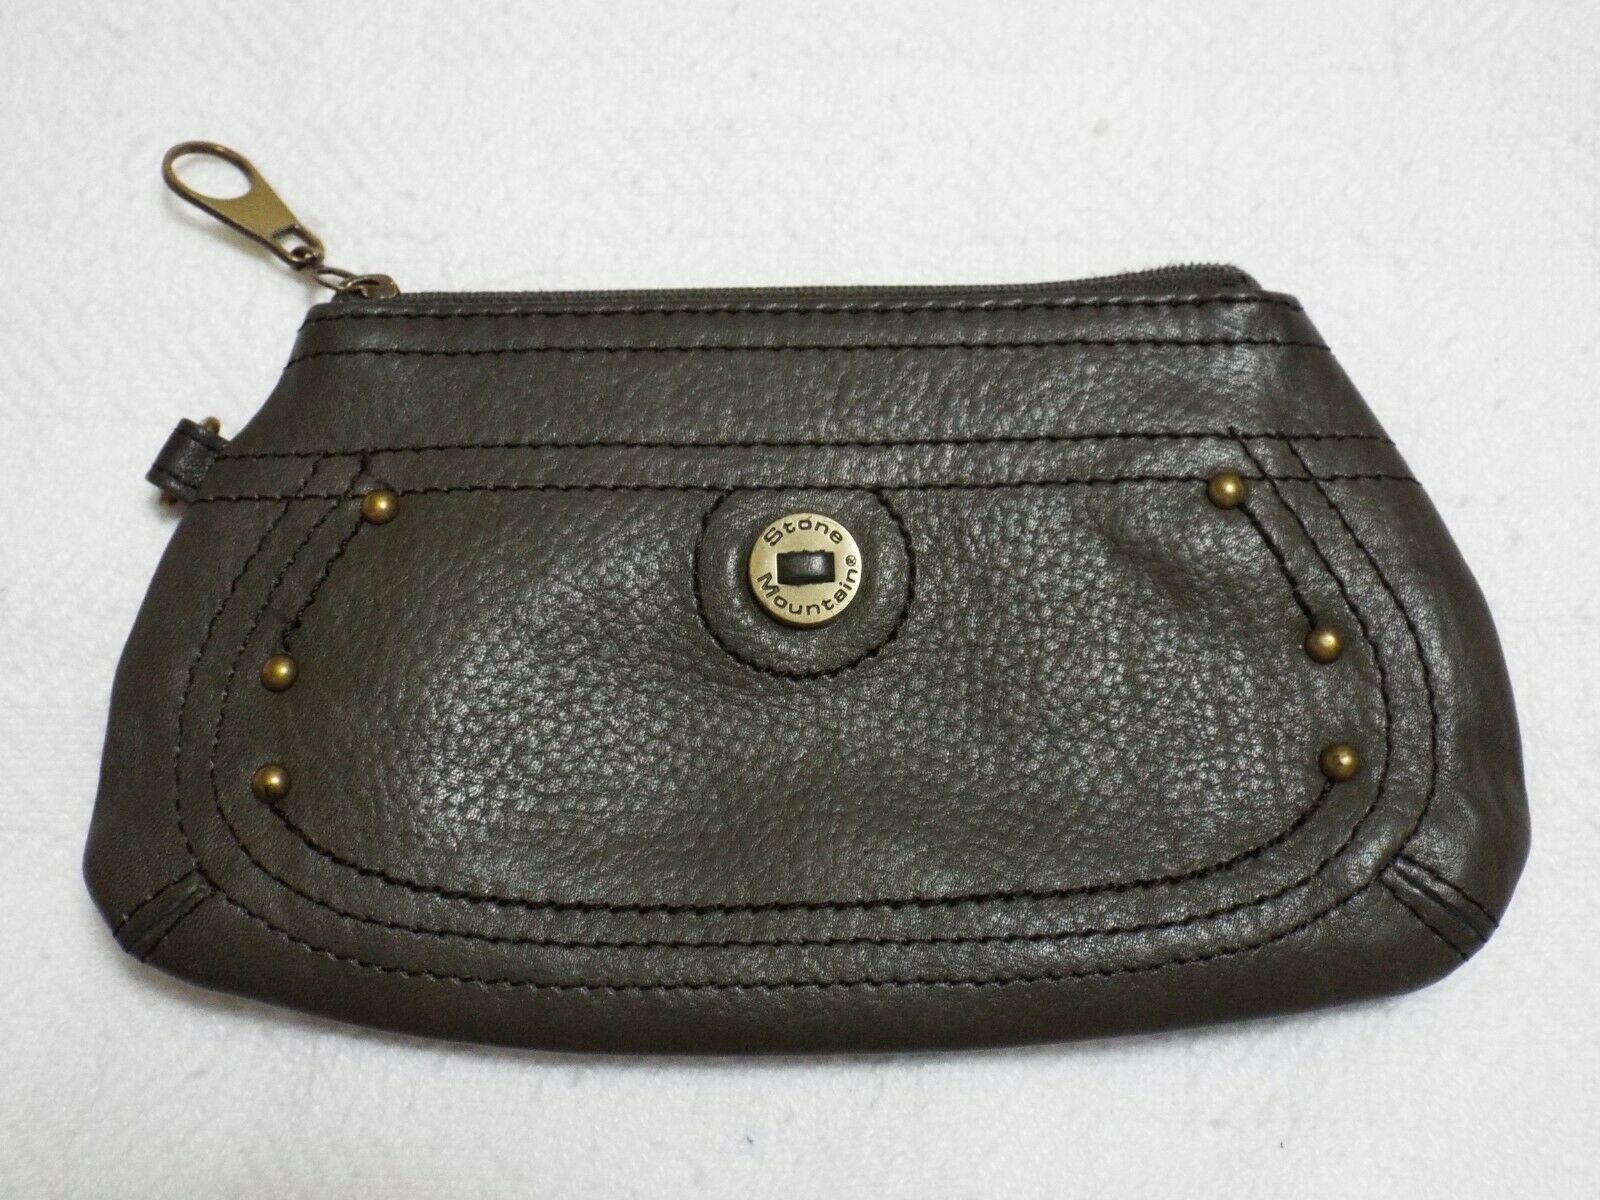 CLEARANCE!!! Genuine Leather Stone Mountain Olive Green Wristlet Clutch Wallet